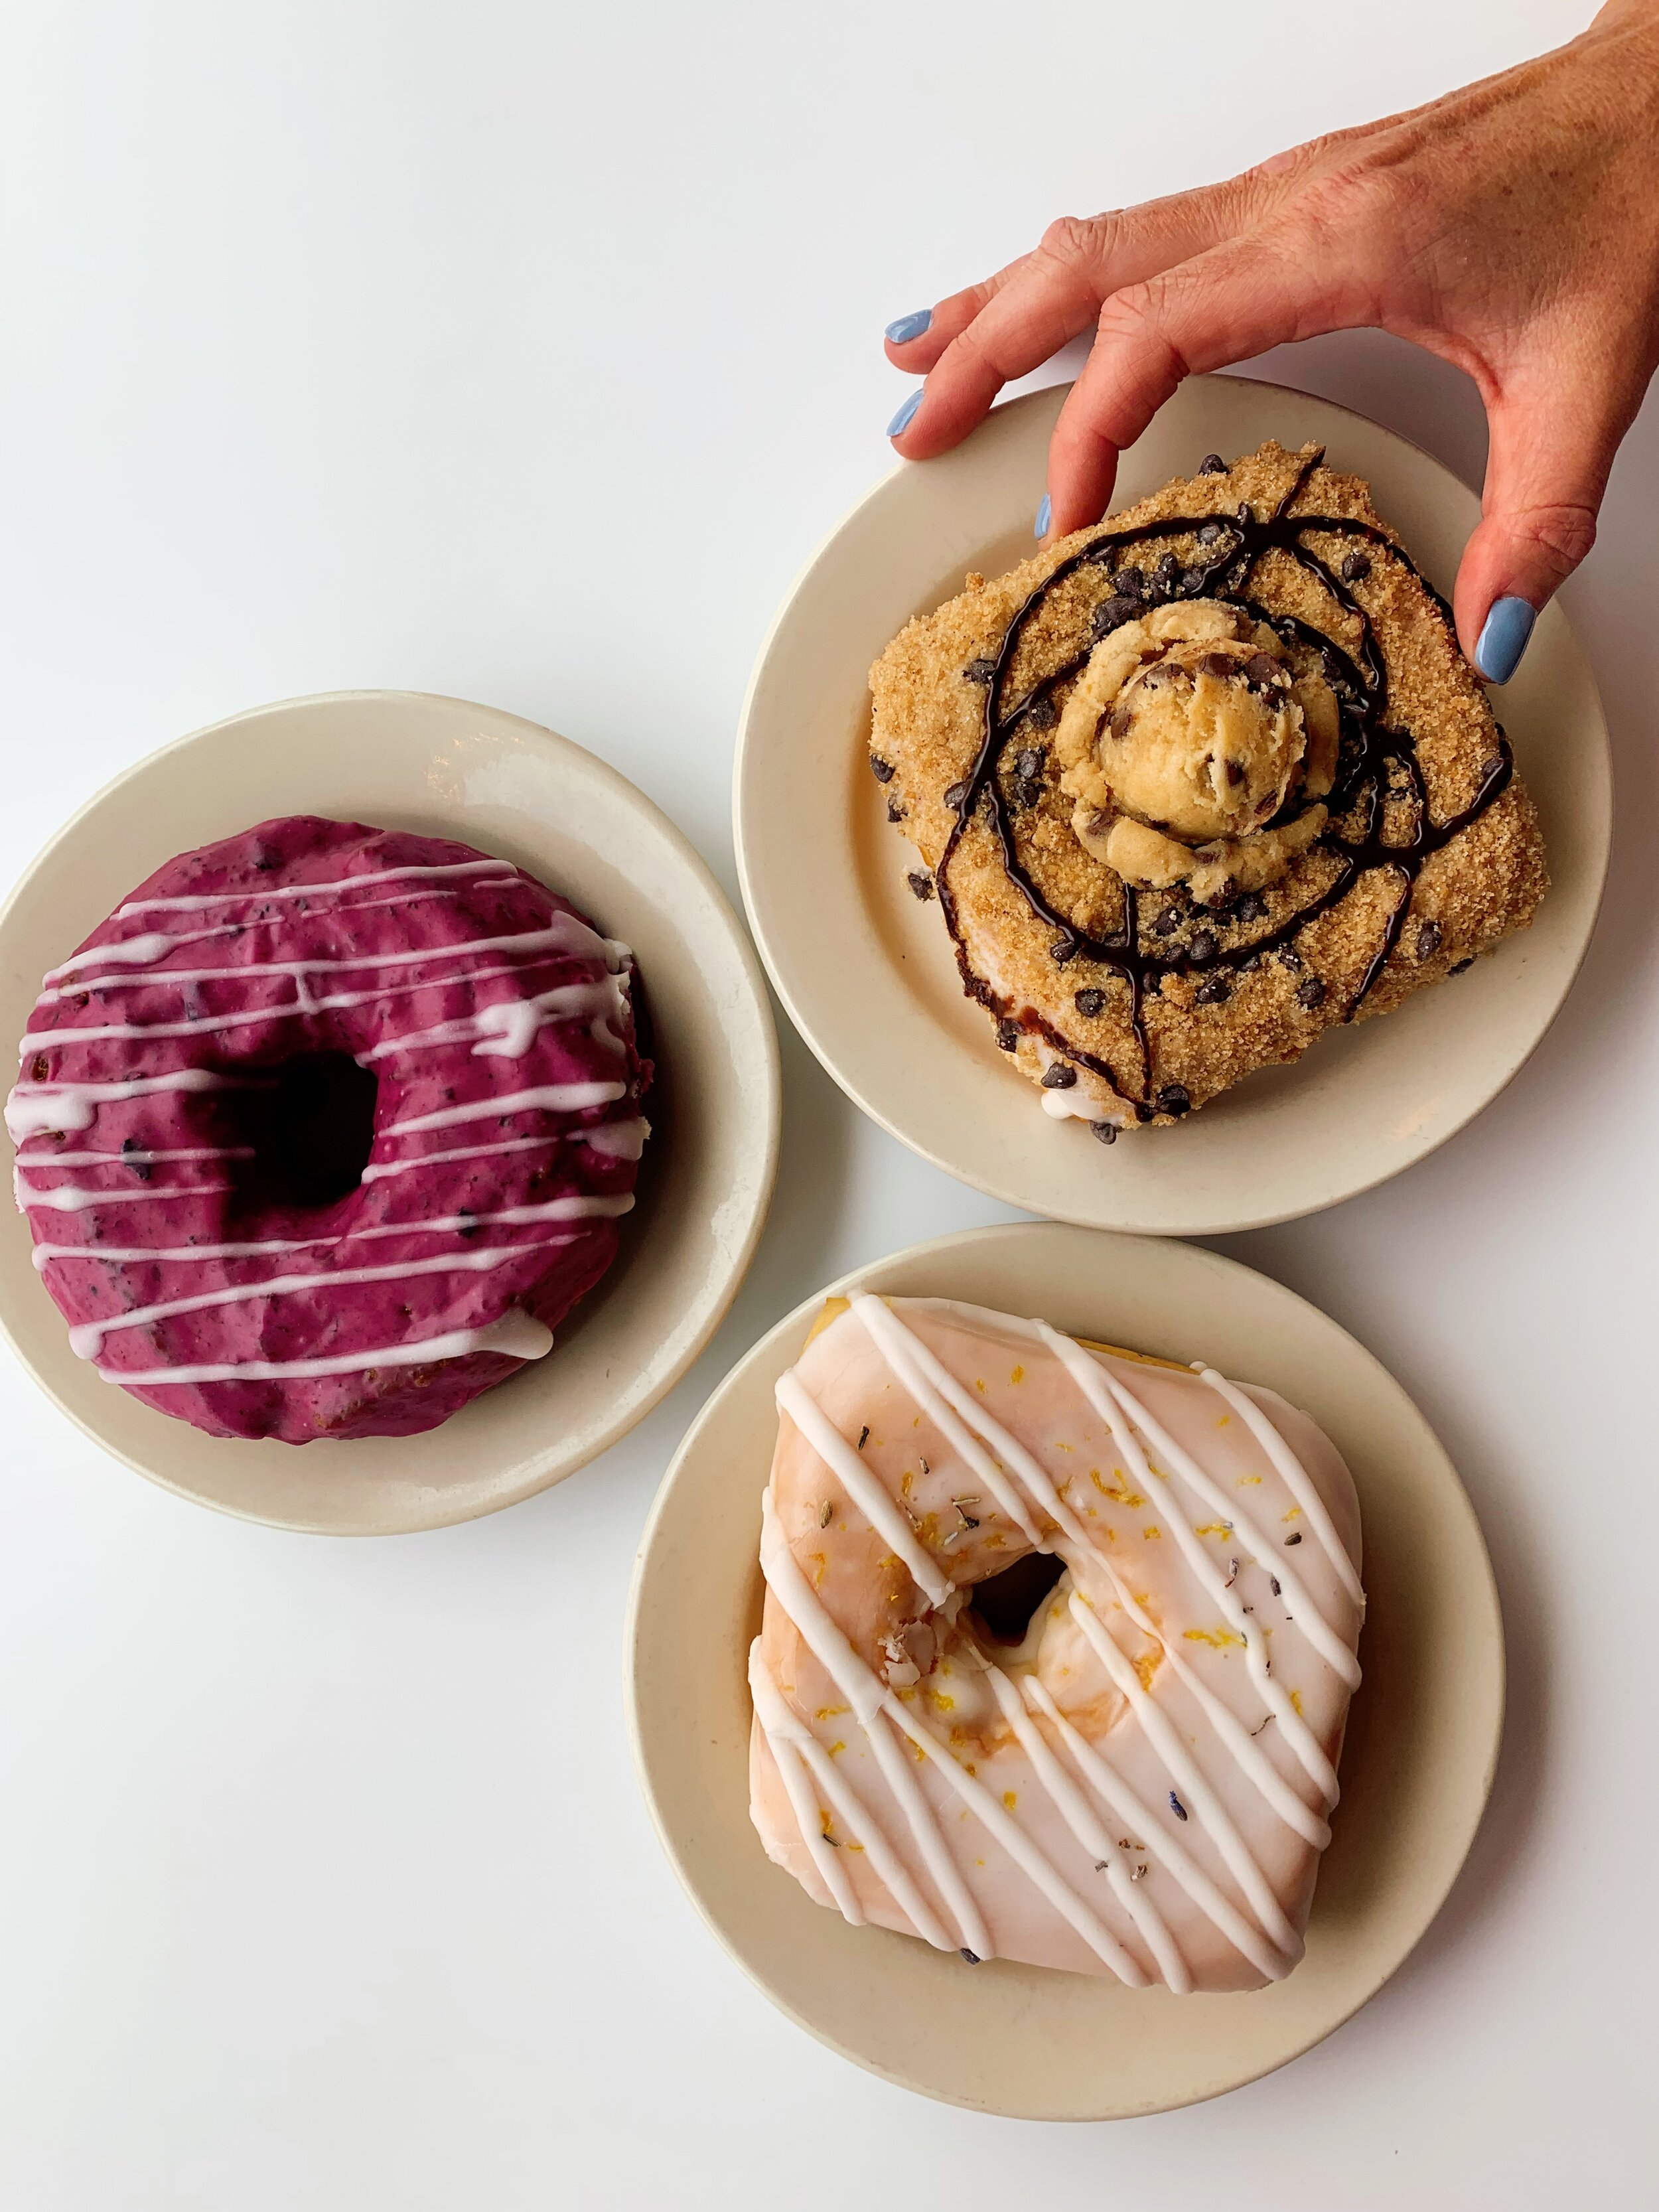 Vincent Van Doughnut | (From Left to Right): Blueberry | Chocolate Chip Cookie Dough | Lemon Lavender